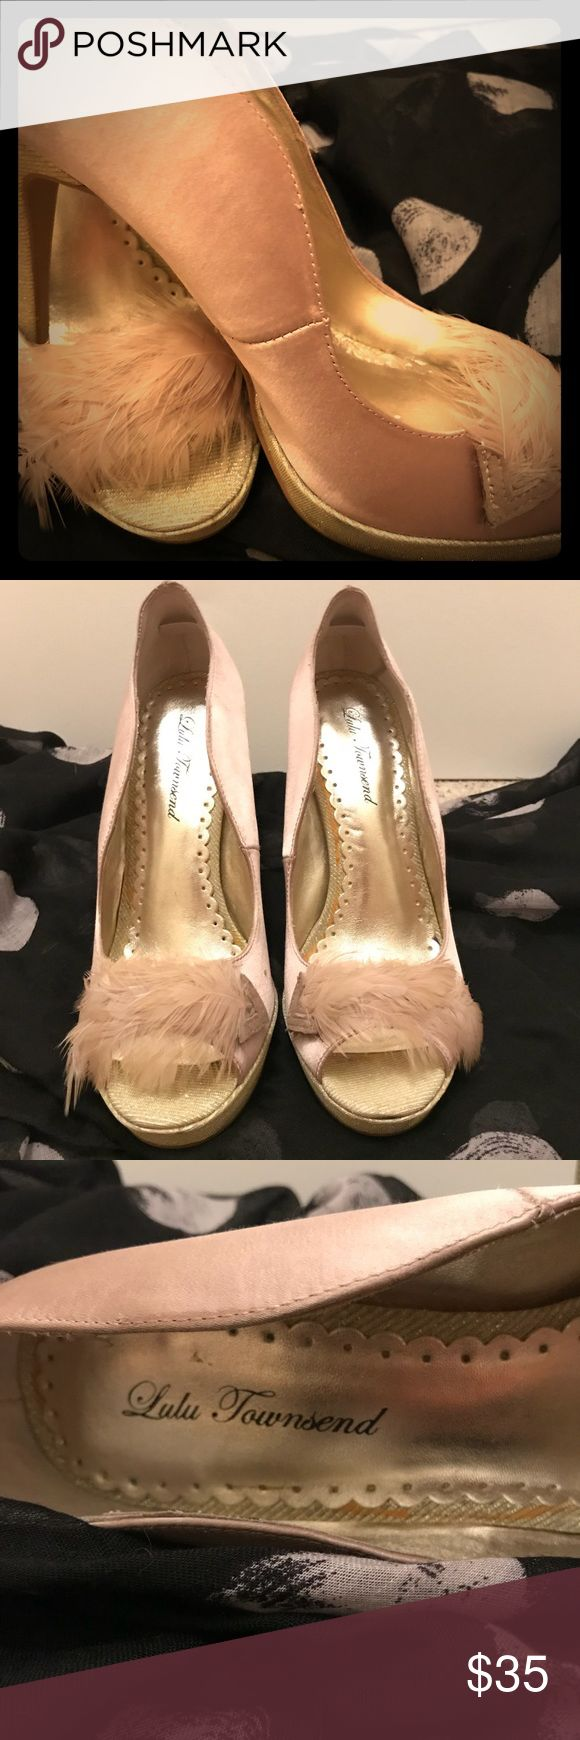 Champagne Glittery Heels Holidays are upon us and these shoes are a great way to help celebrate. Champagne colored heels with glittery gold base and heel and cream colored feather across the front. Worn in store to try on and at a friend's home just once (NYE Party). Perfect way to set off your holiday outfit Lulu Townsend Shoes Heels